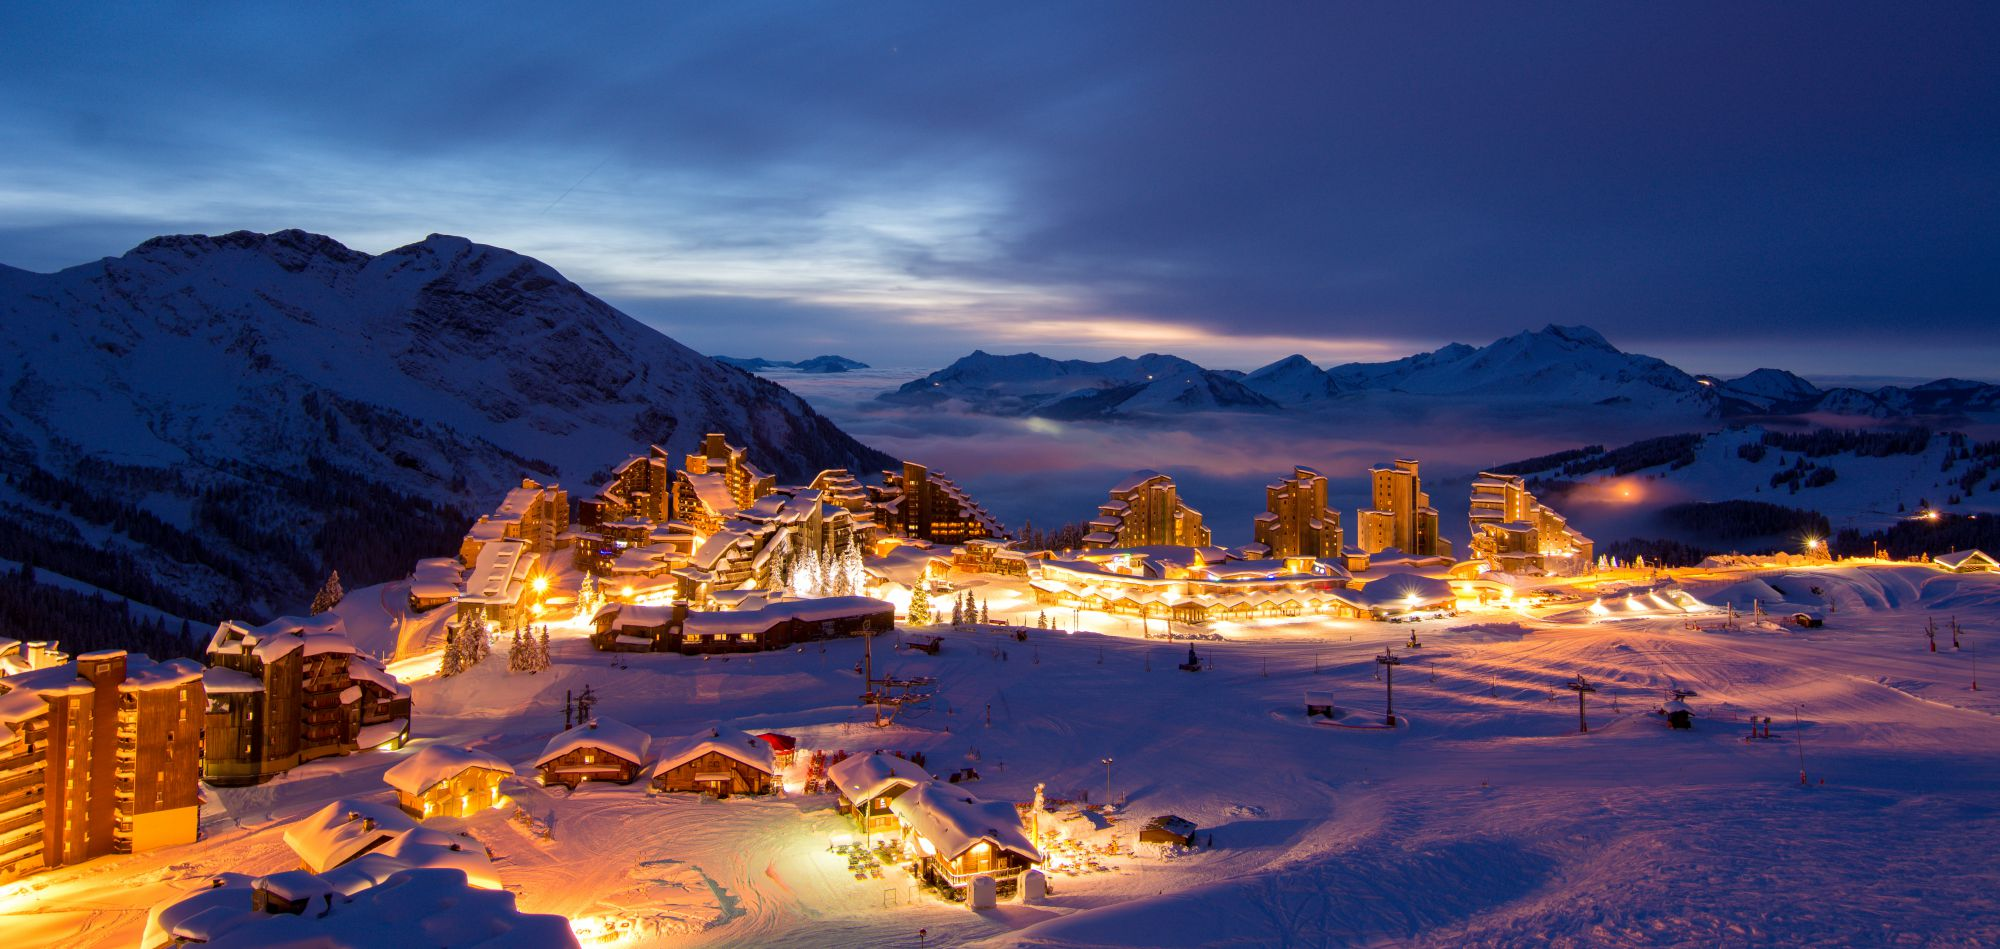 Avoriaz night skiing (photo courtesy of Avoriaz Tourist Office)